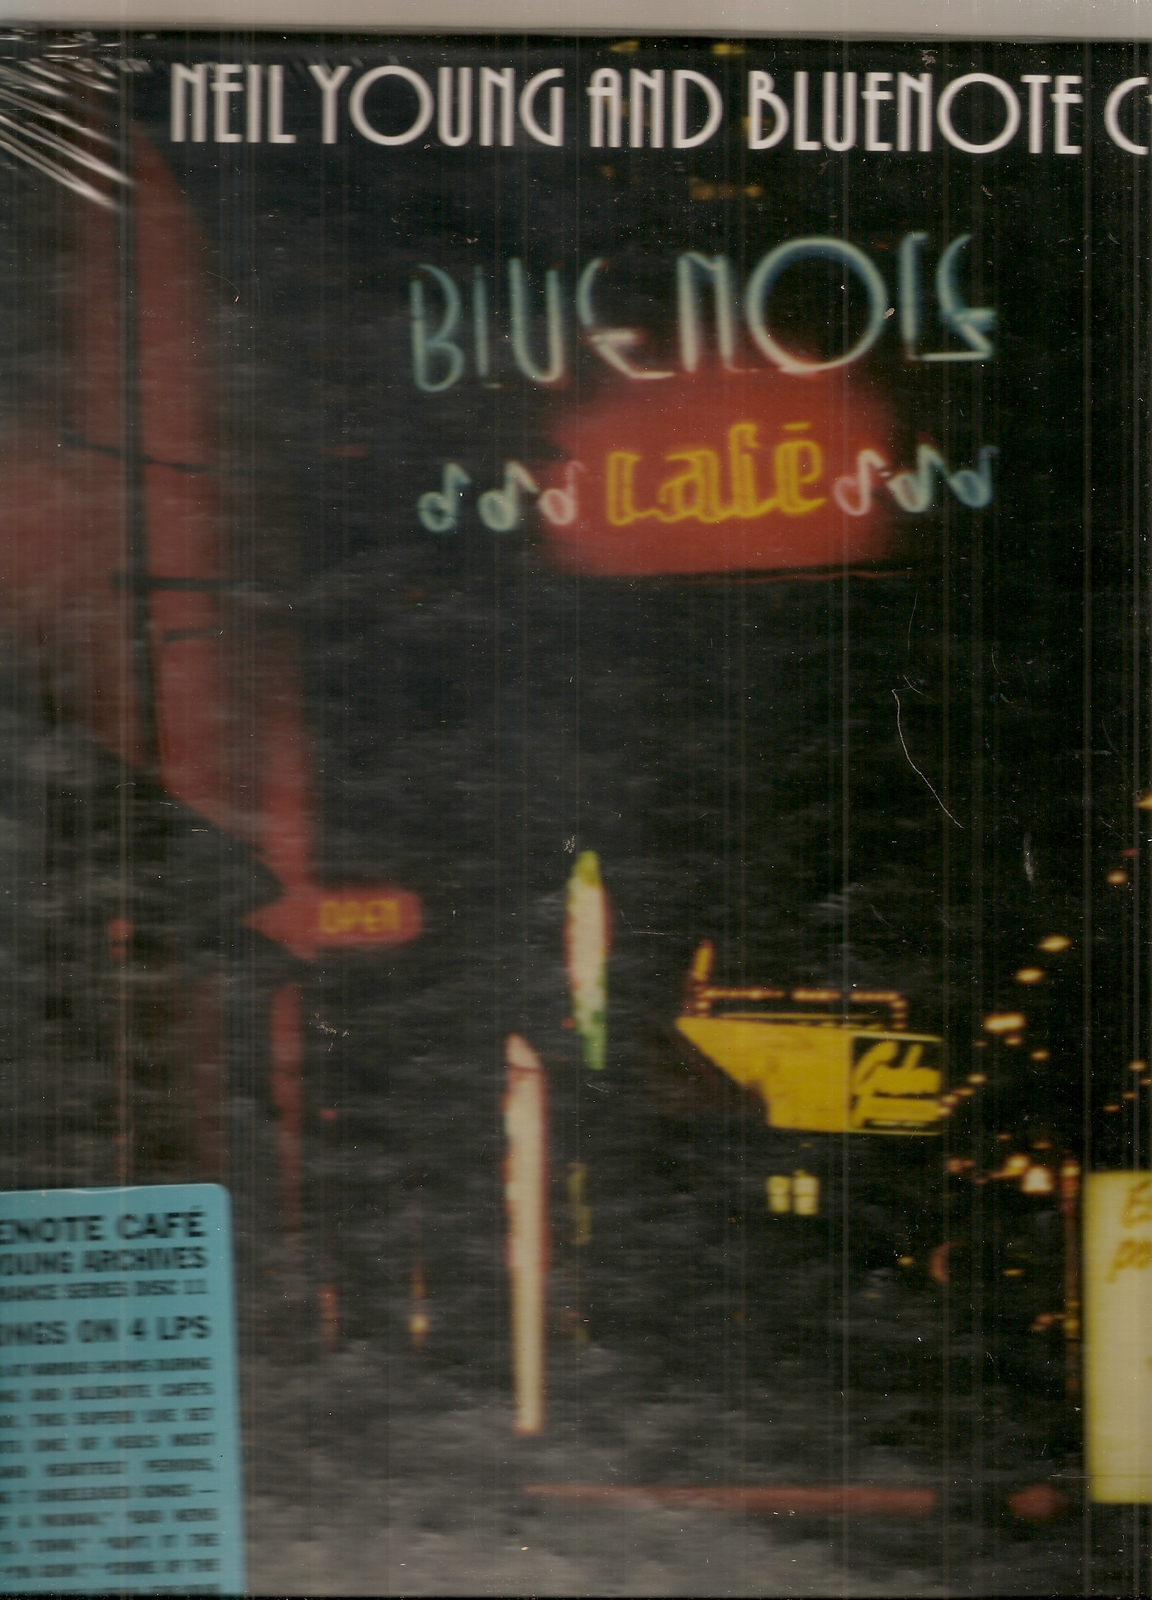 Blue note cafe 1986pt1 8